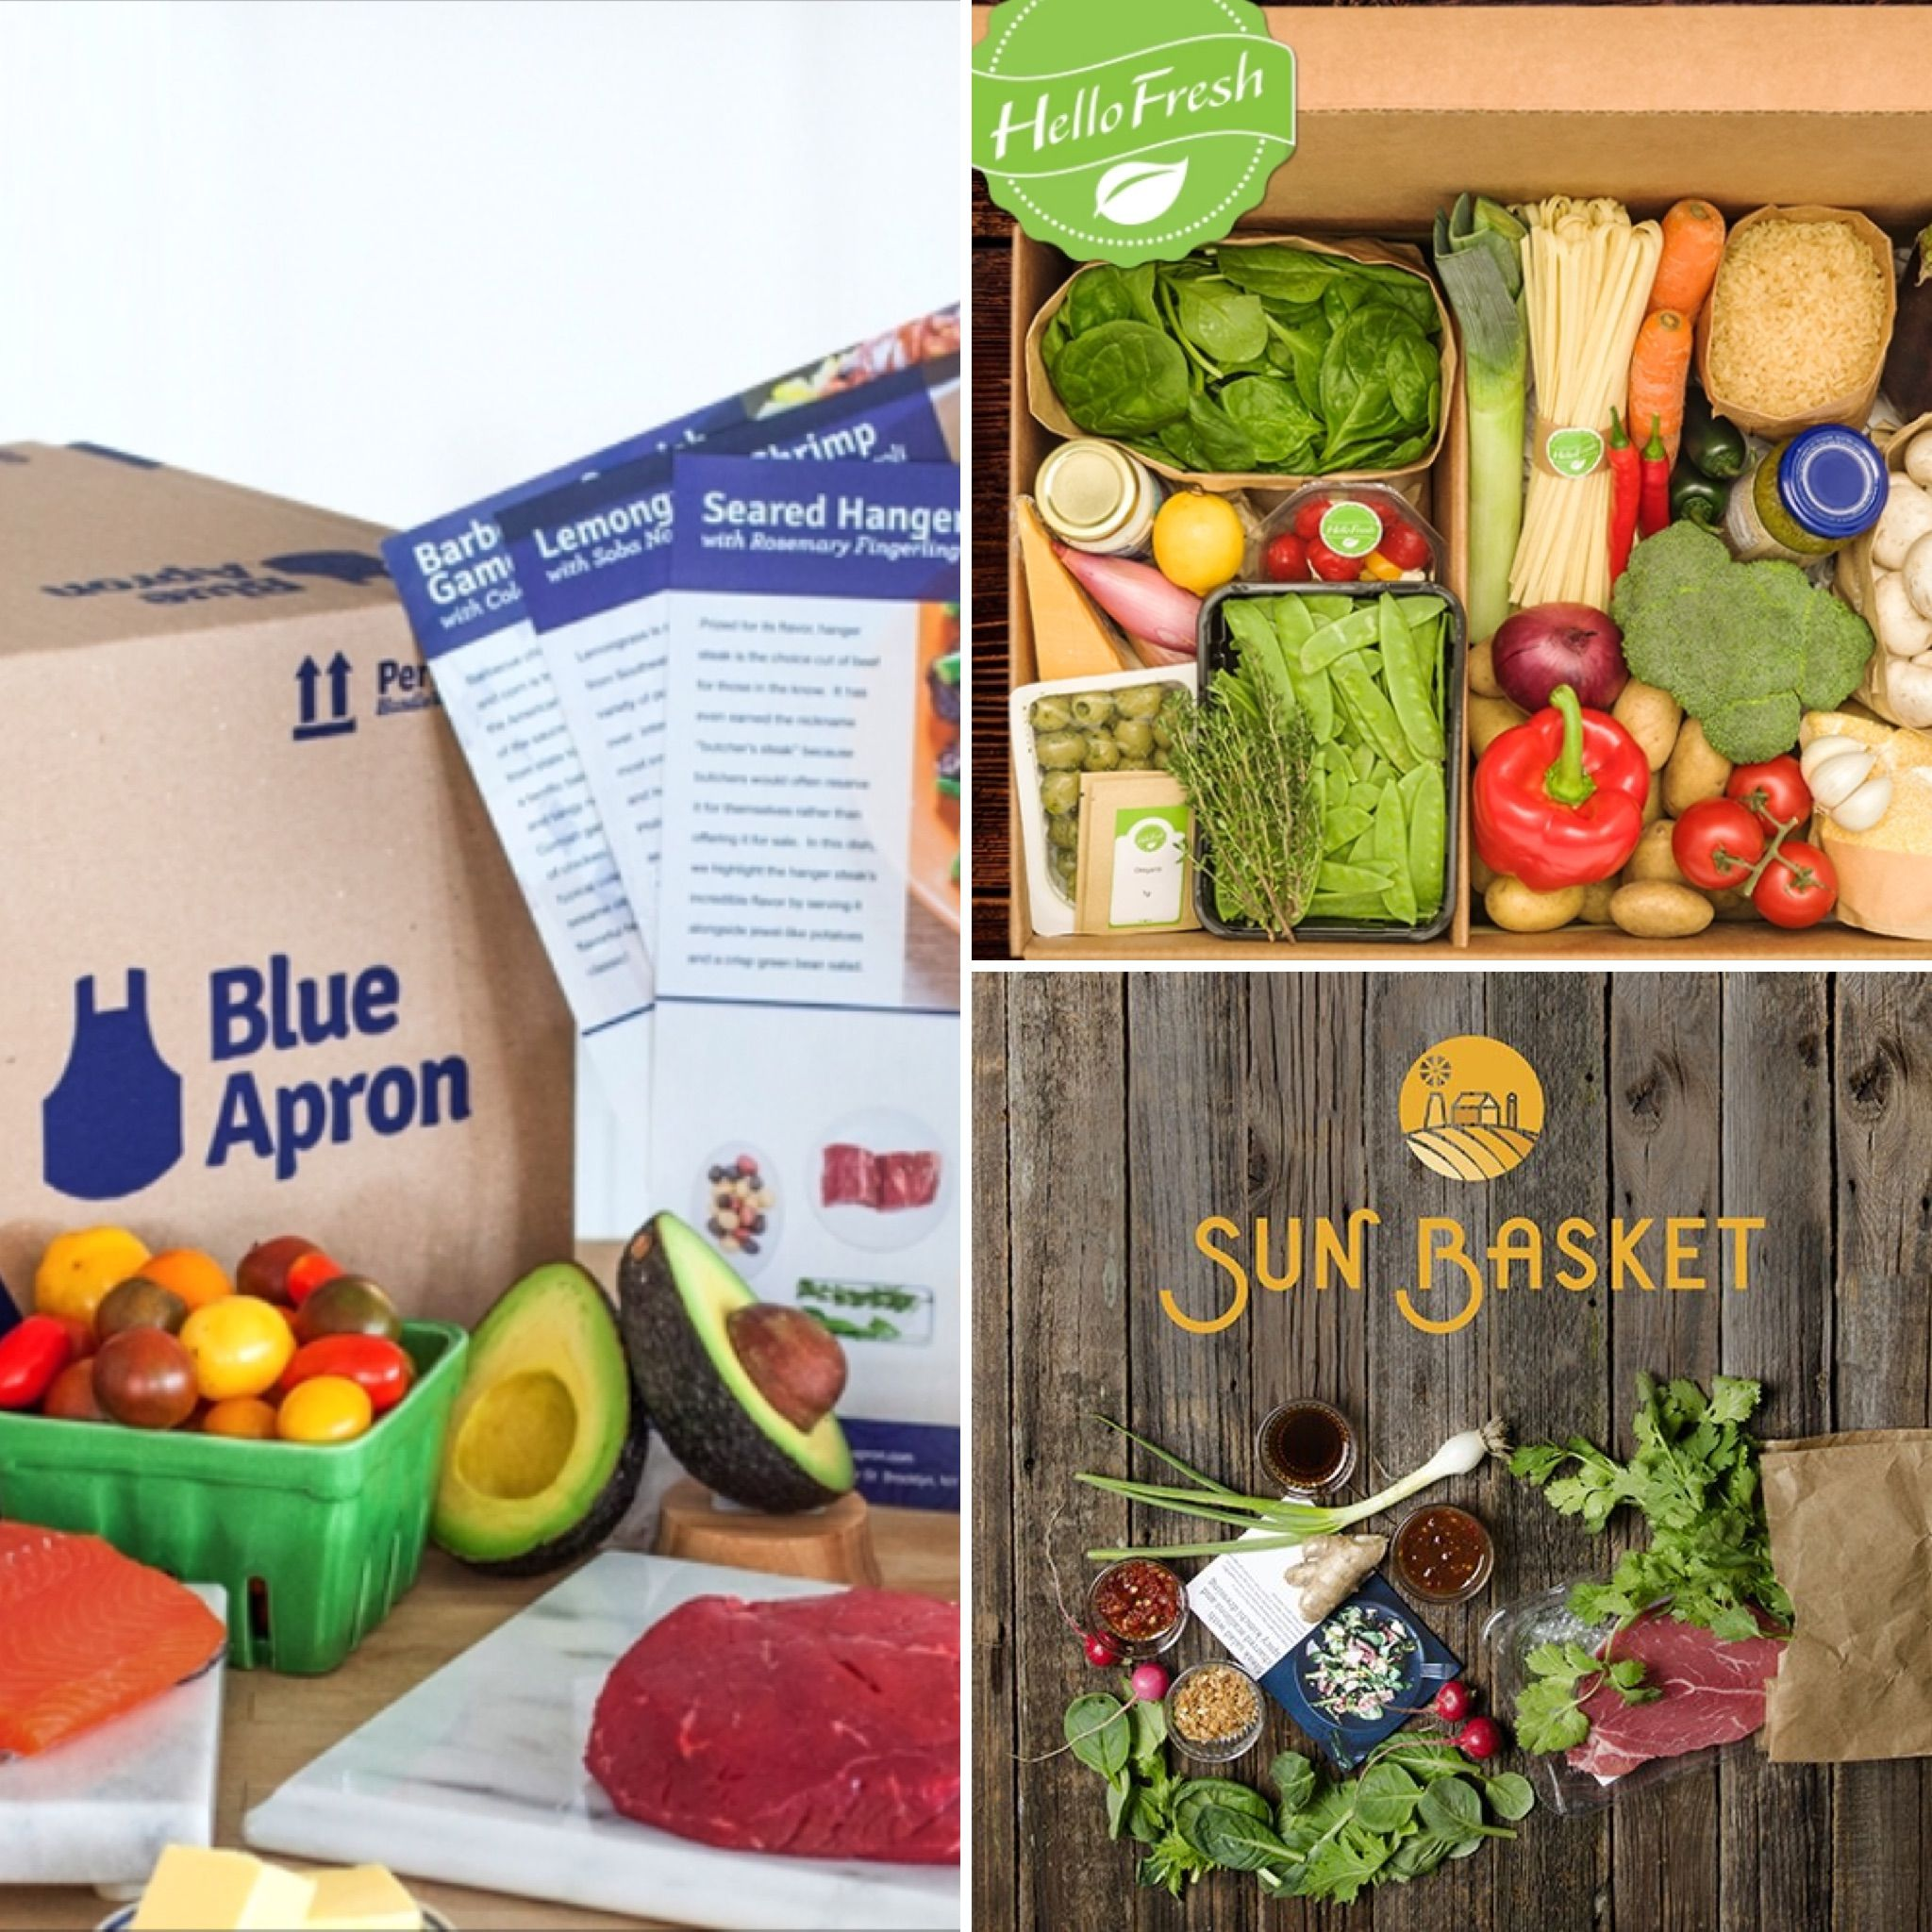 Blue apron in canada